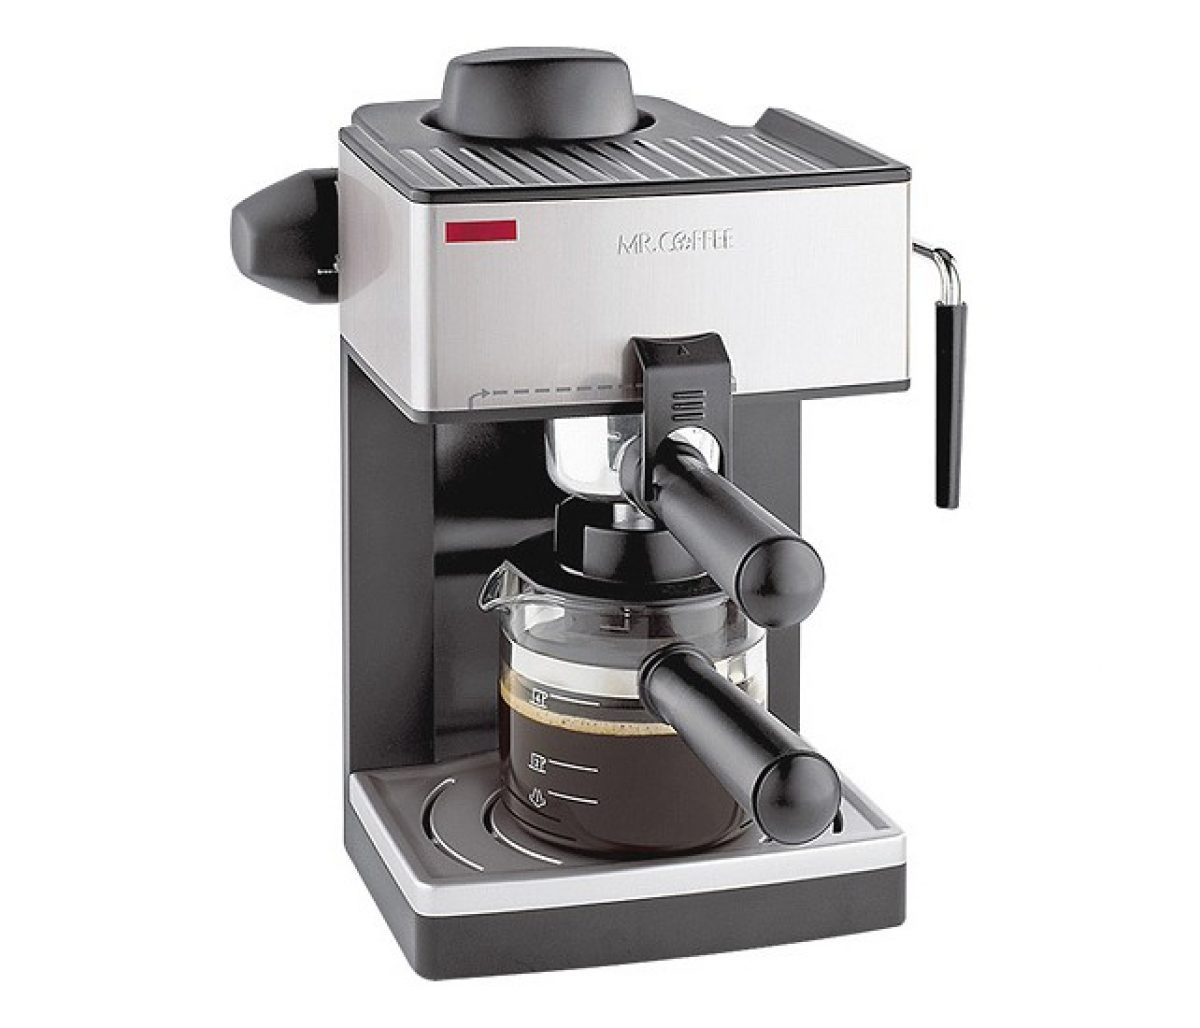 Ninety-four percent of those who bought this espresso machine would recommend it to a friend (Photo via Best Buy)